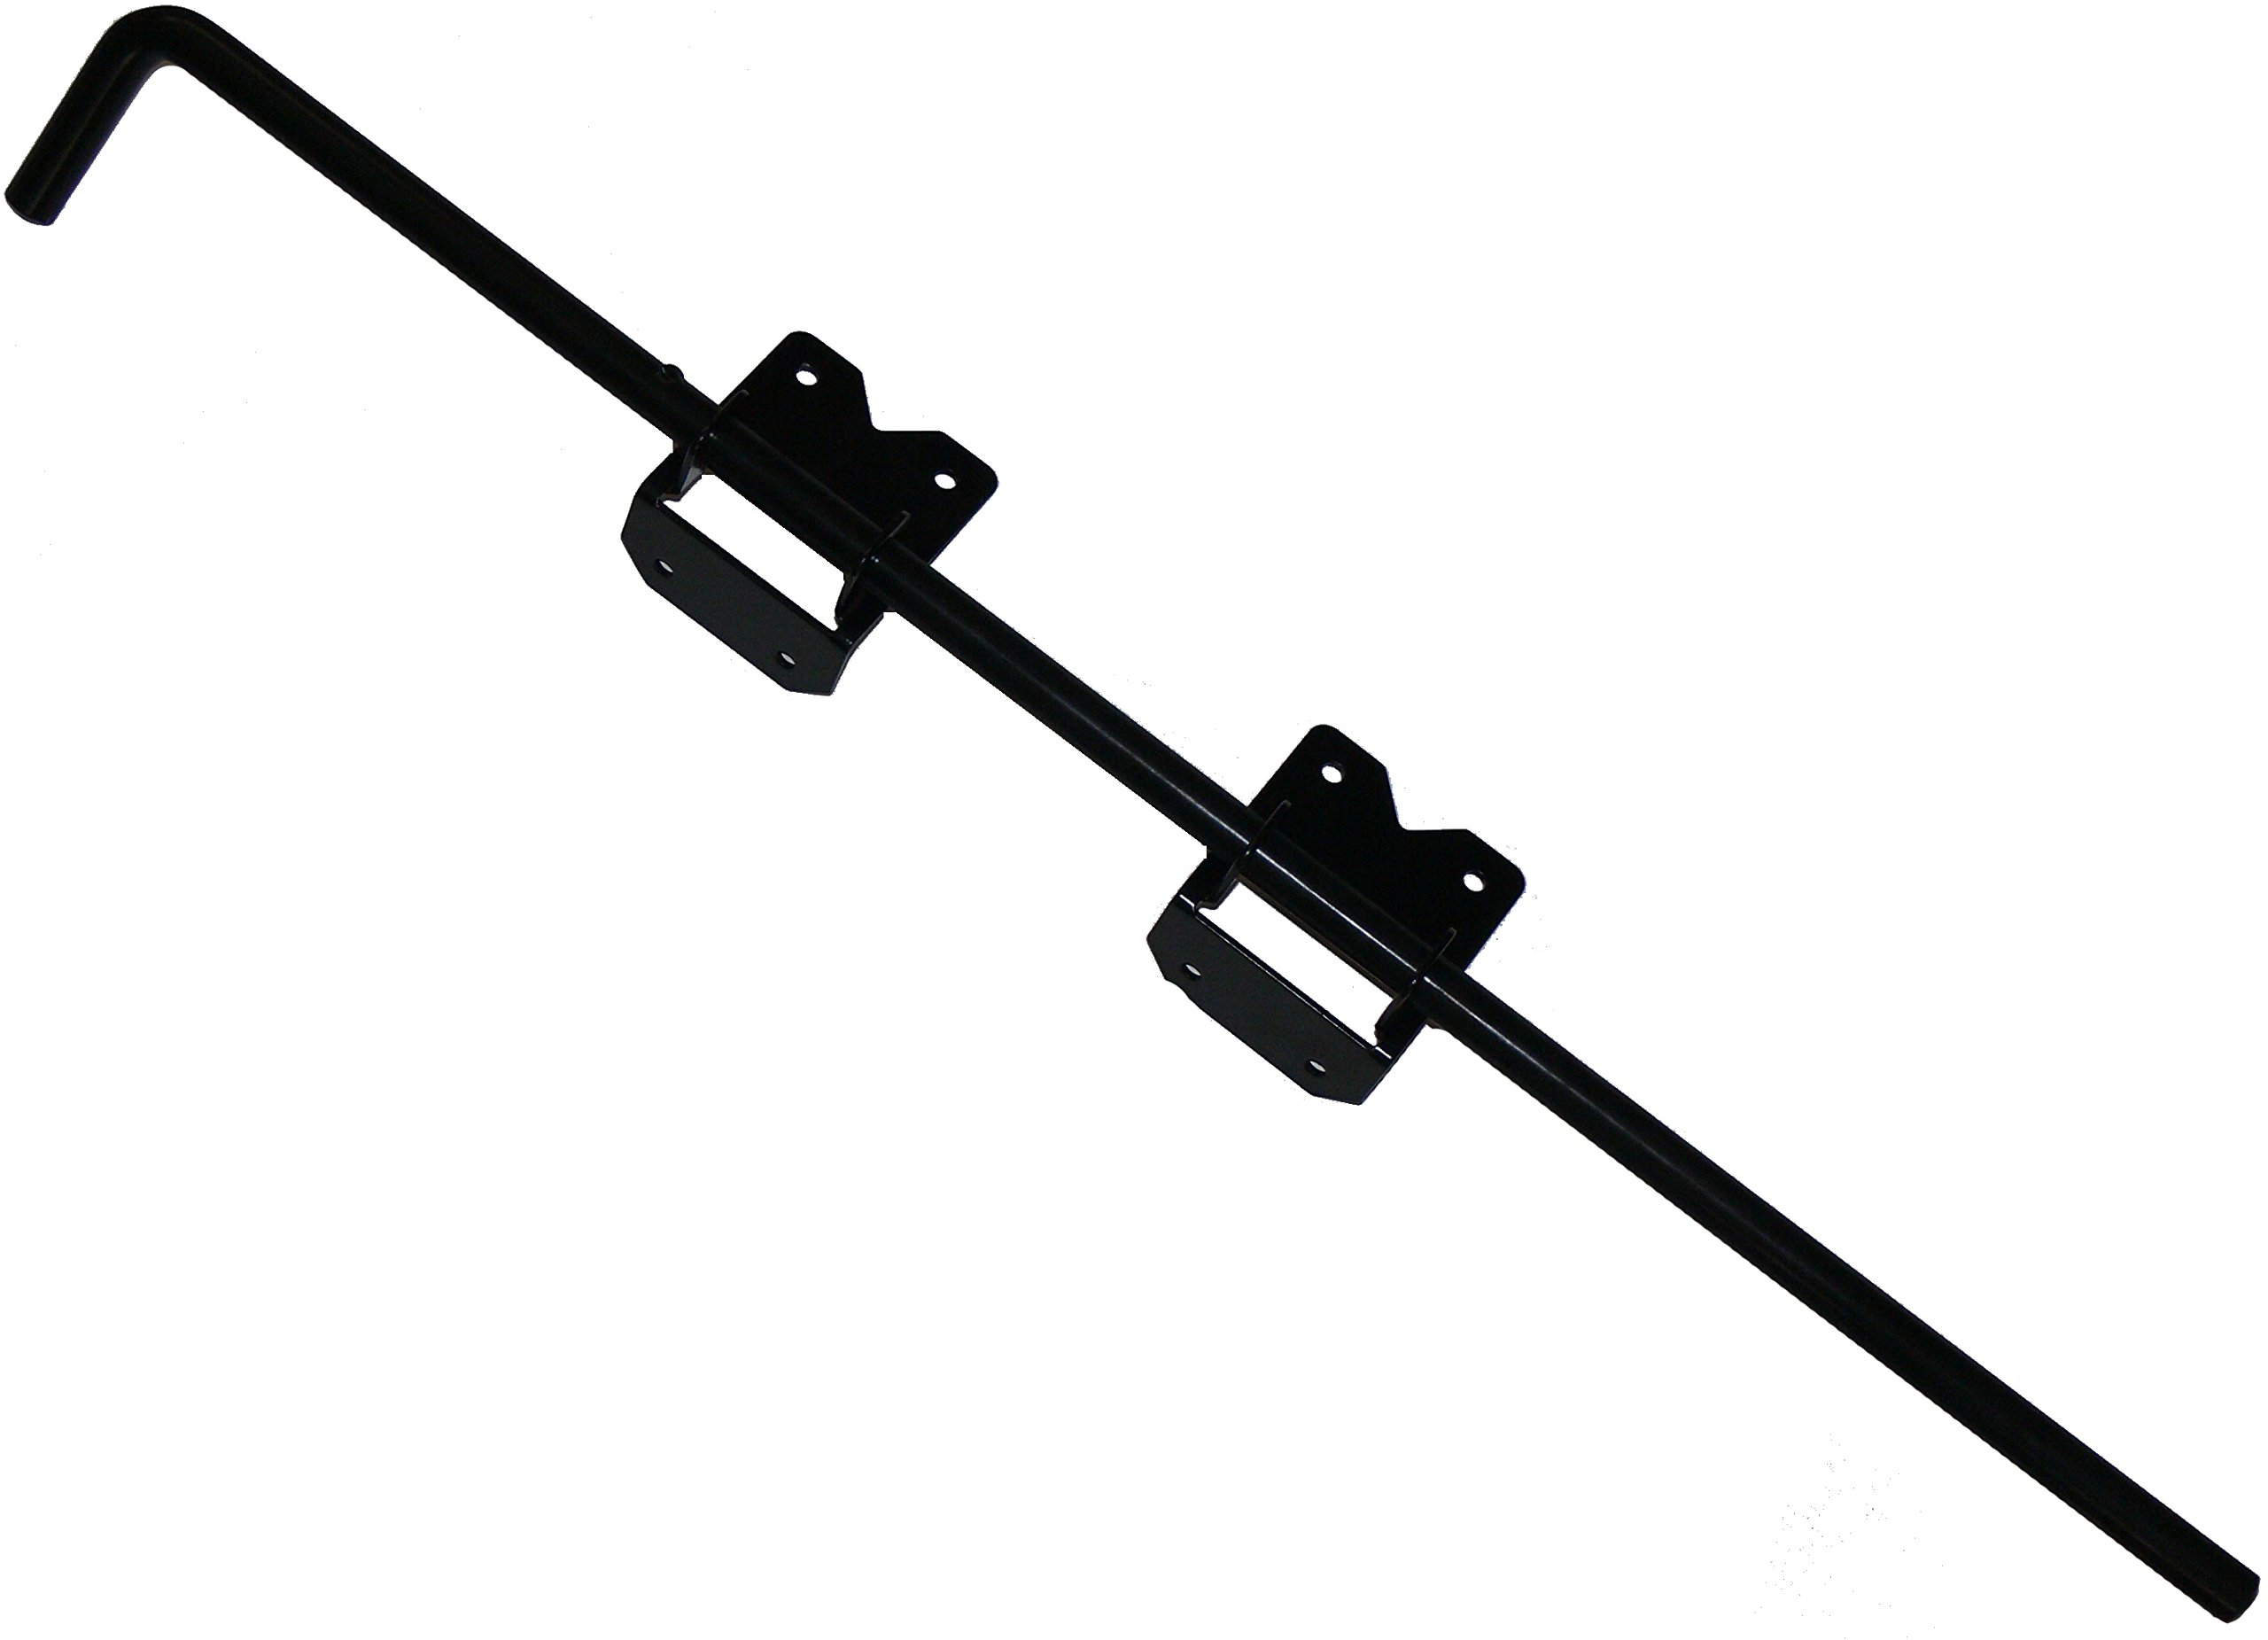 36'' Vinyl Fence Gate Drop Rod (Black) - AKA Gate Drop Pin, Cane Bolt - Drop Rods for Securing One of The Double Gates to The Ground so The Other can be Latched to it - Powder Coated Gate Hardware